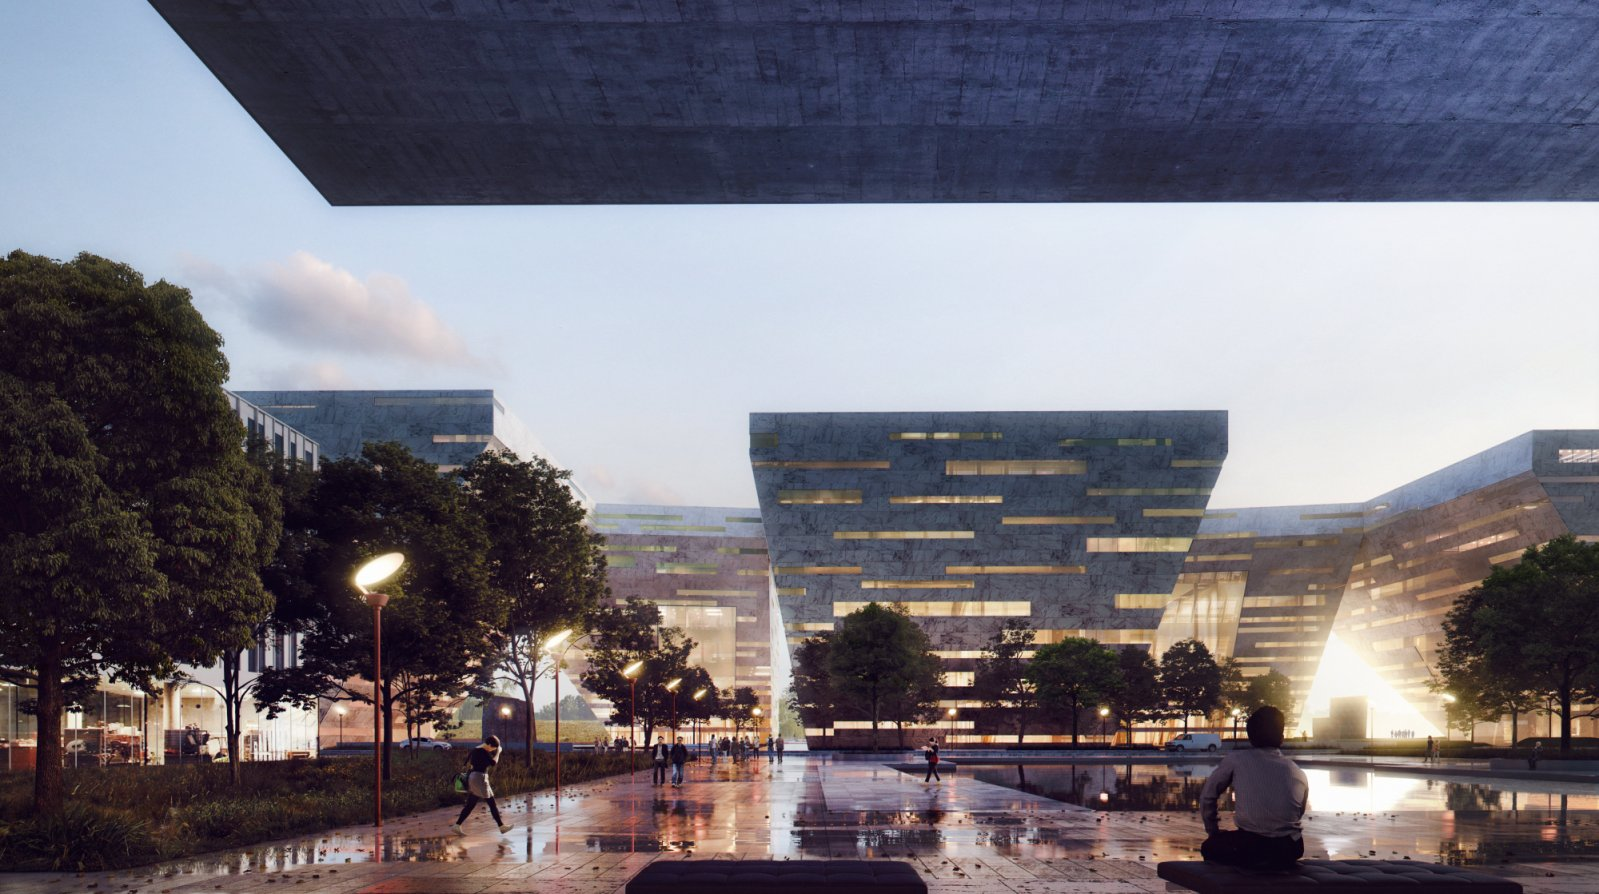 new Cultural Center in Foshan